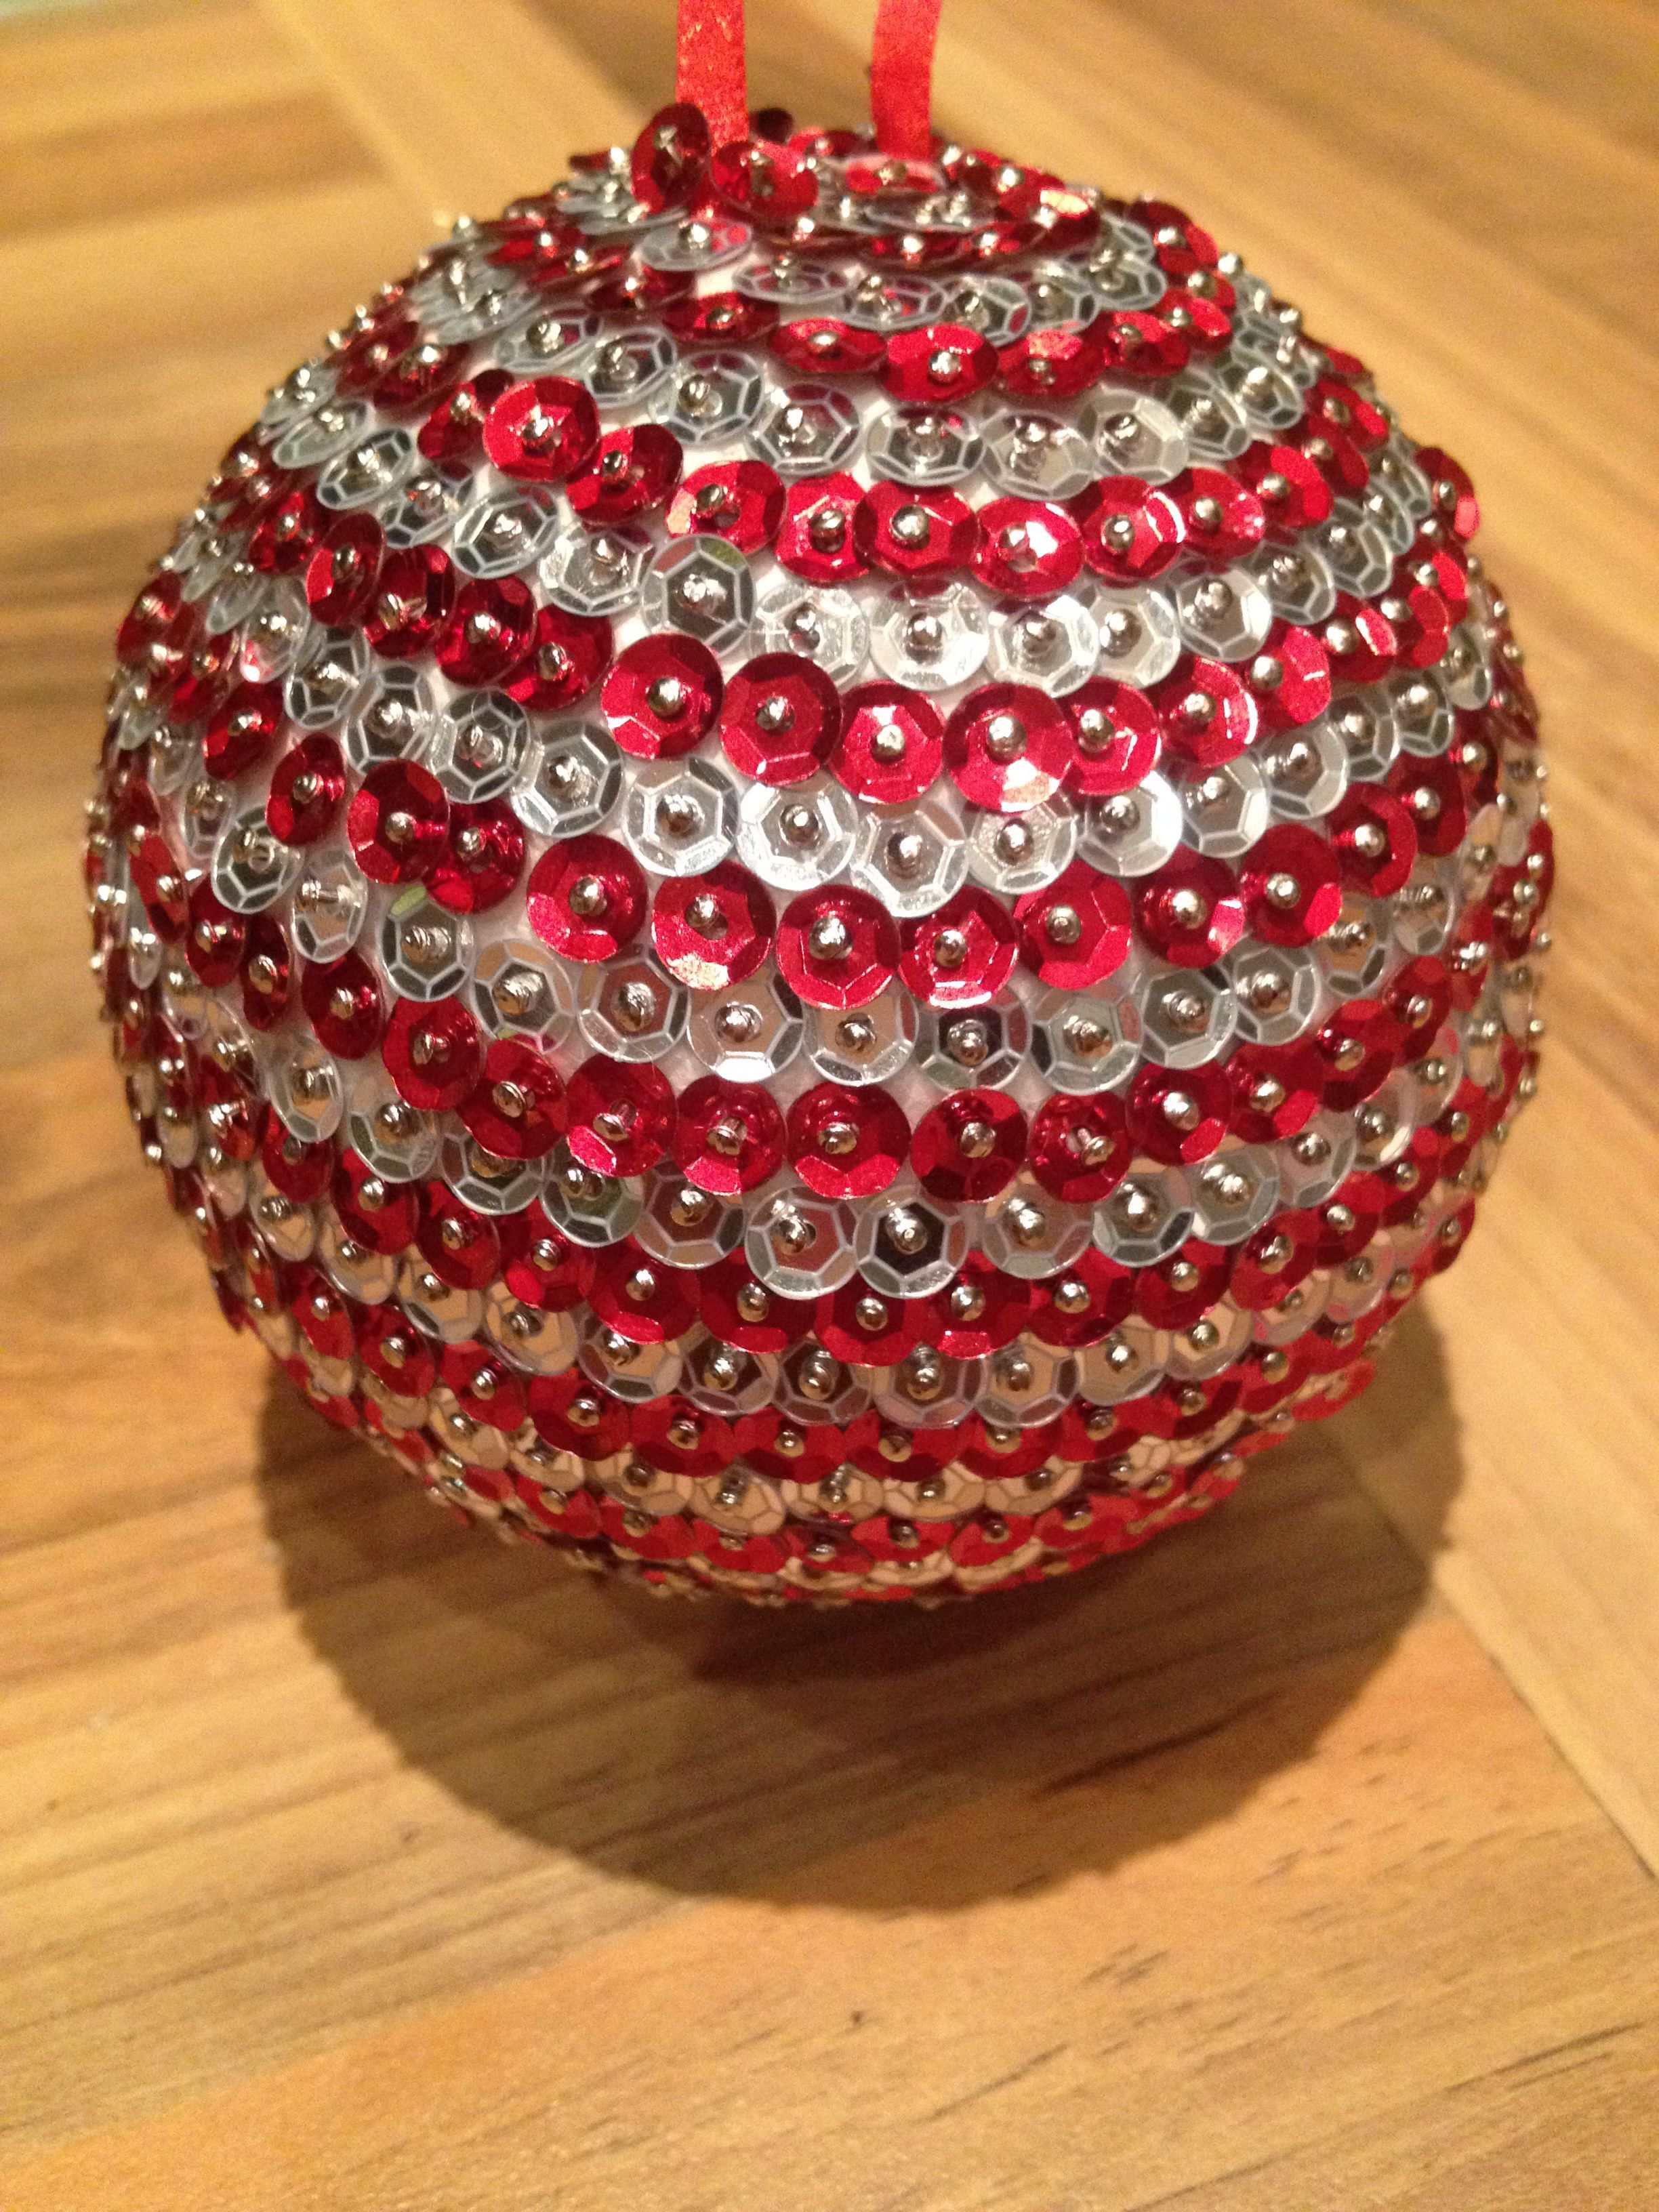 Home Made Baubles Baubles Made With Polystyrene Balls Sequin Pins And A Variety Of Diy Christmas Ornaments Easy Sequin Ornaments Christmas Ornaments To Make